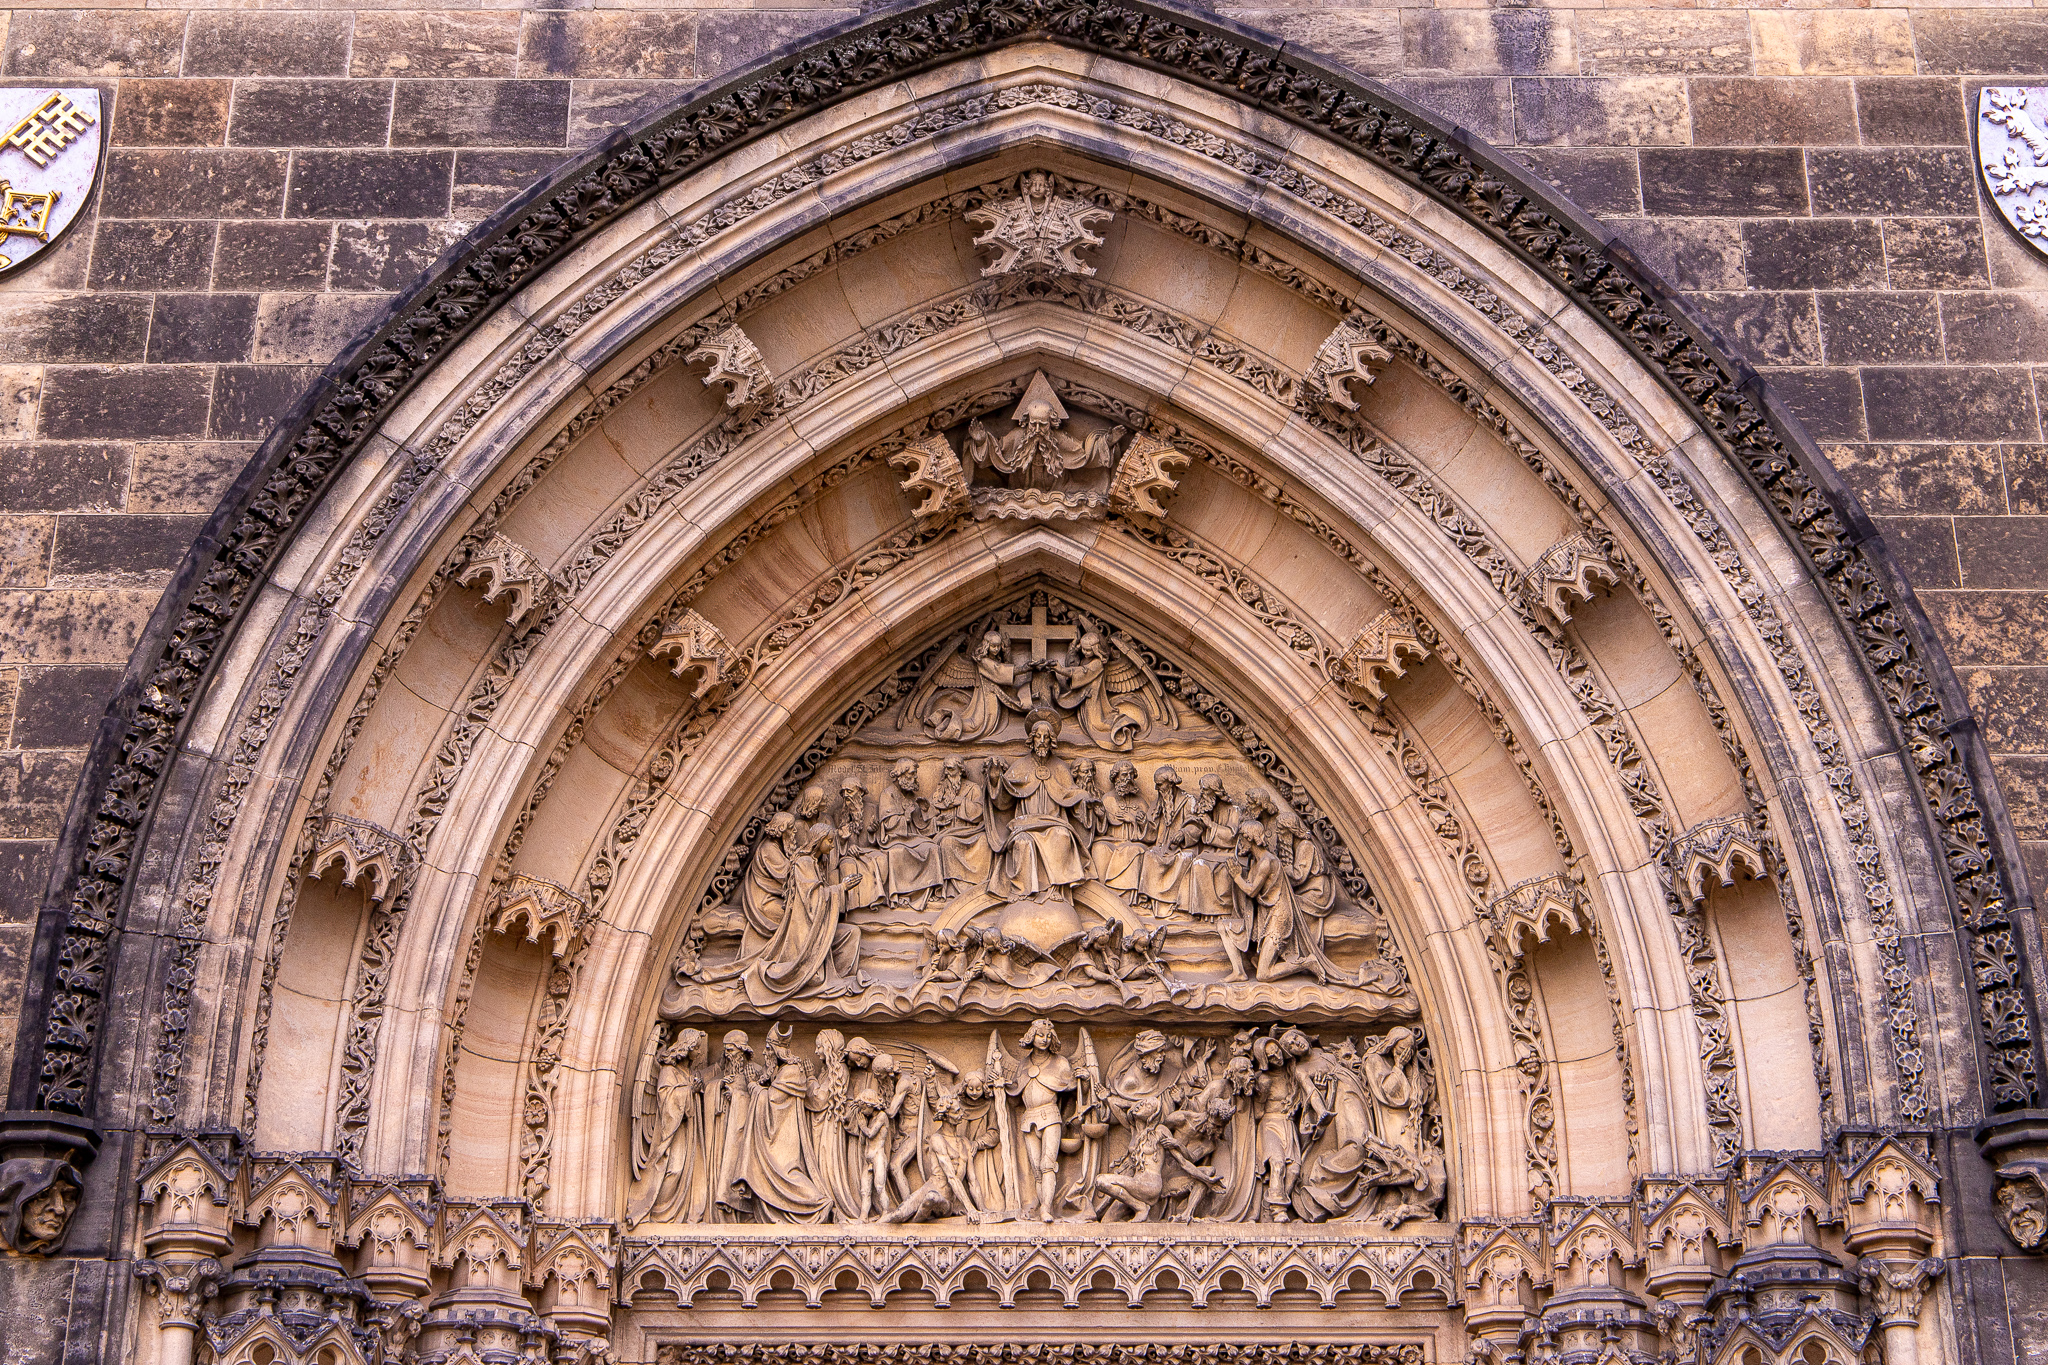 Intricate work above the entranceway